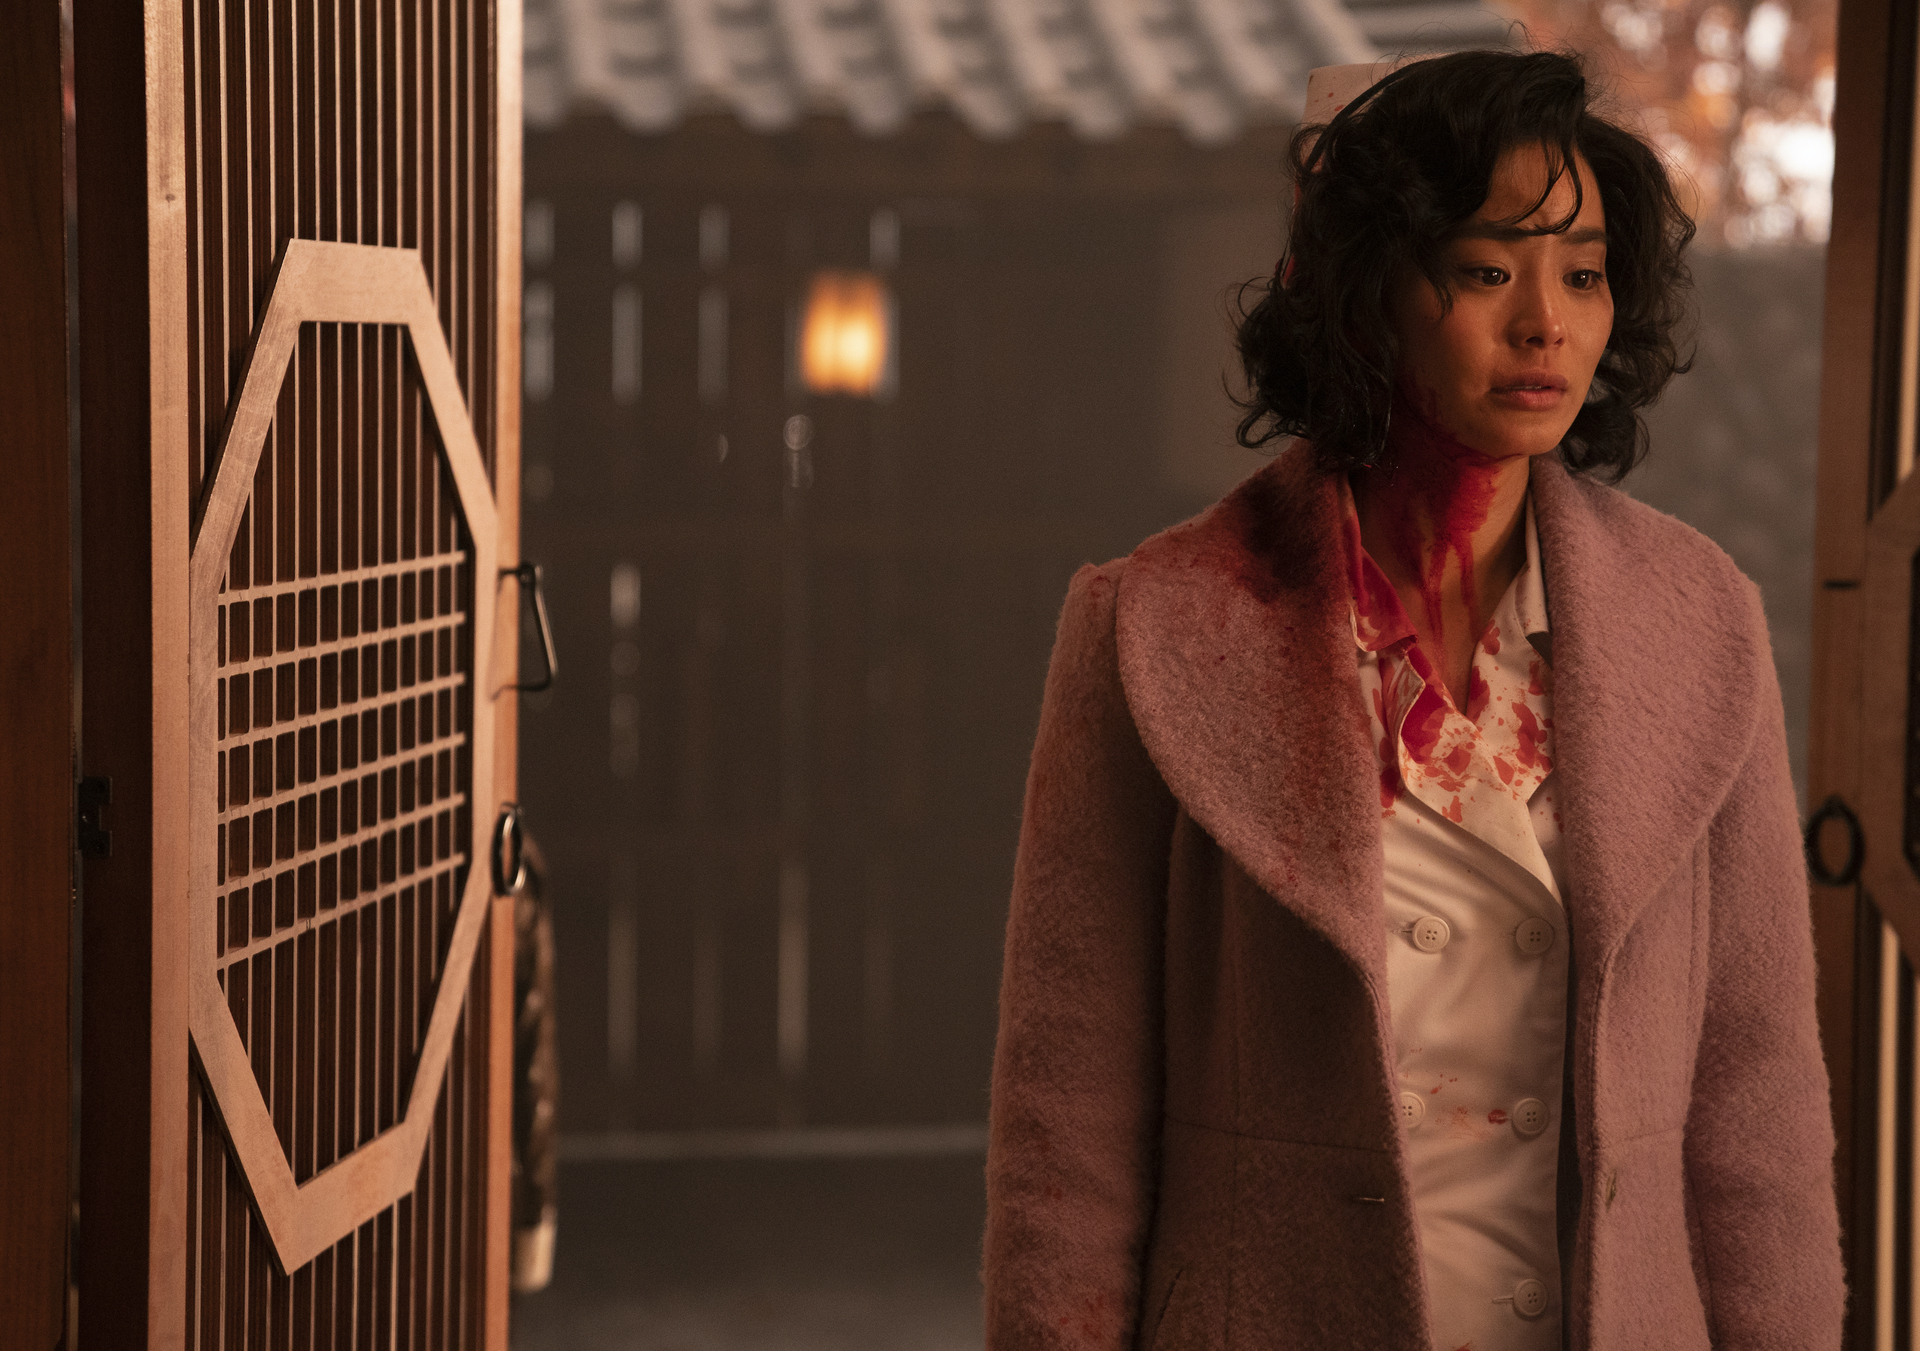 In Complex Lovecraft Country Role Jamie Chung Puts S F Korean School Lessons To Work Datebook The wot scorecard provides crowdsourced online ratings & reviews for sfkorean.com regarding its safety and security. in complex lovecraft country role jamie chung puts s f korean school lessons to work datebook